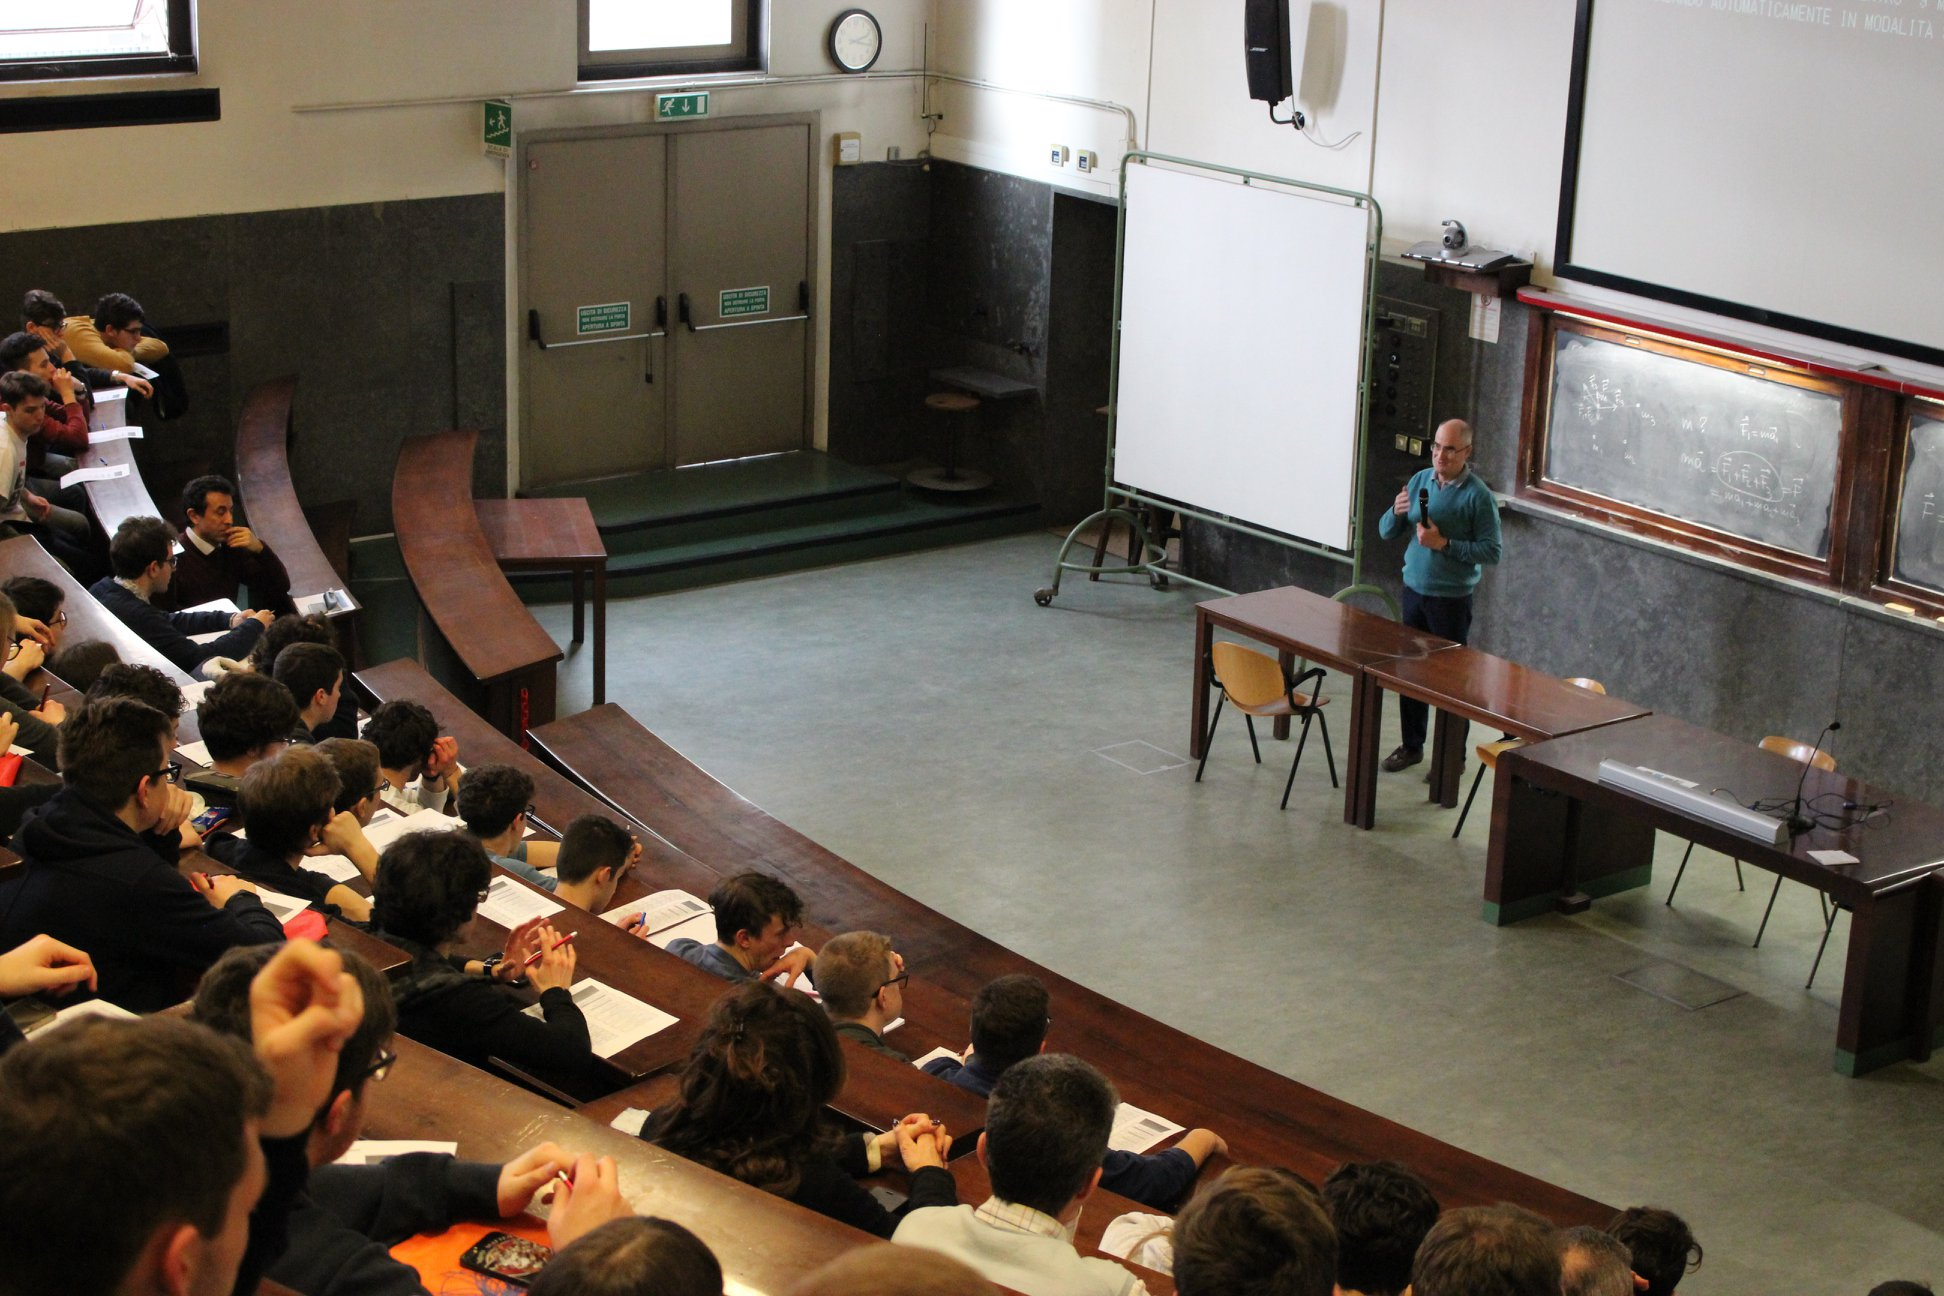 A. Rostagni classroom, Dipartment of Physics and Astronomy of Padova University